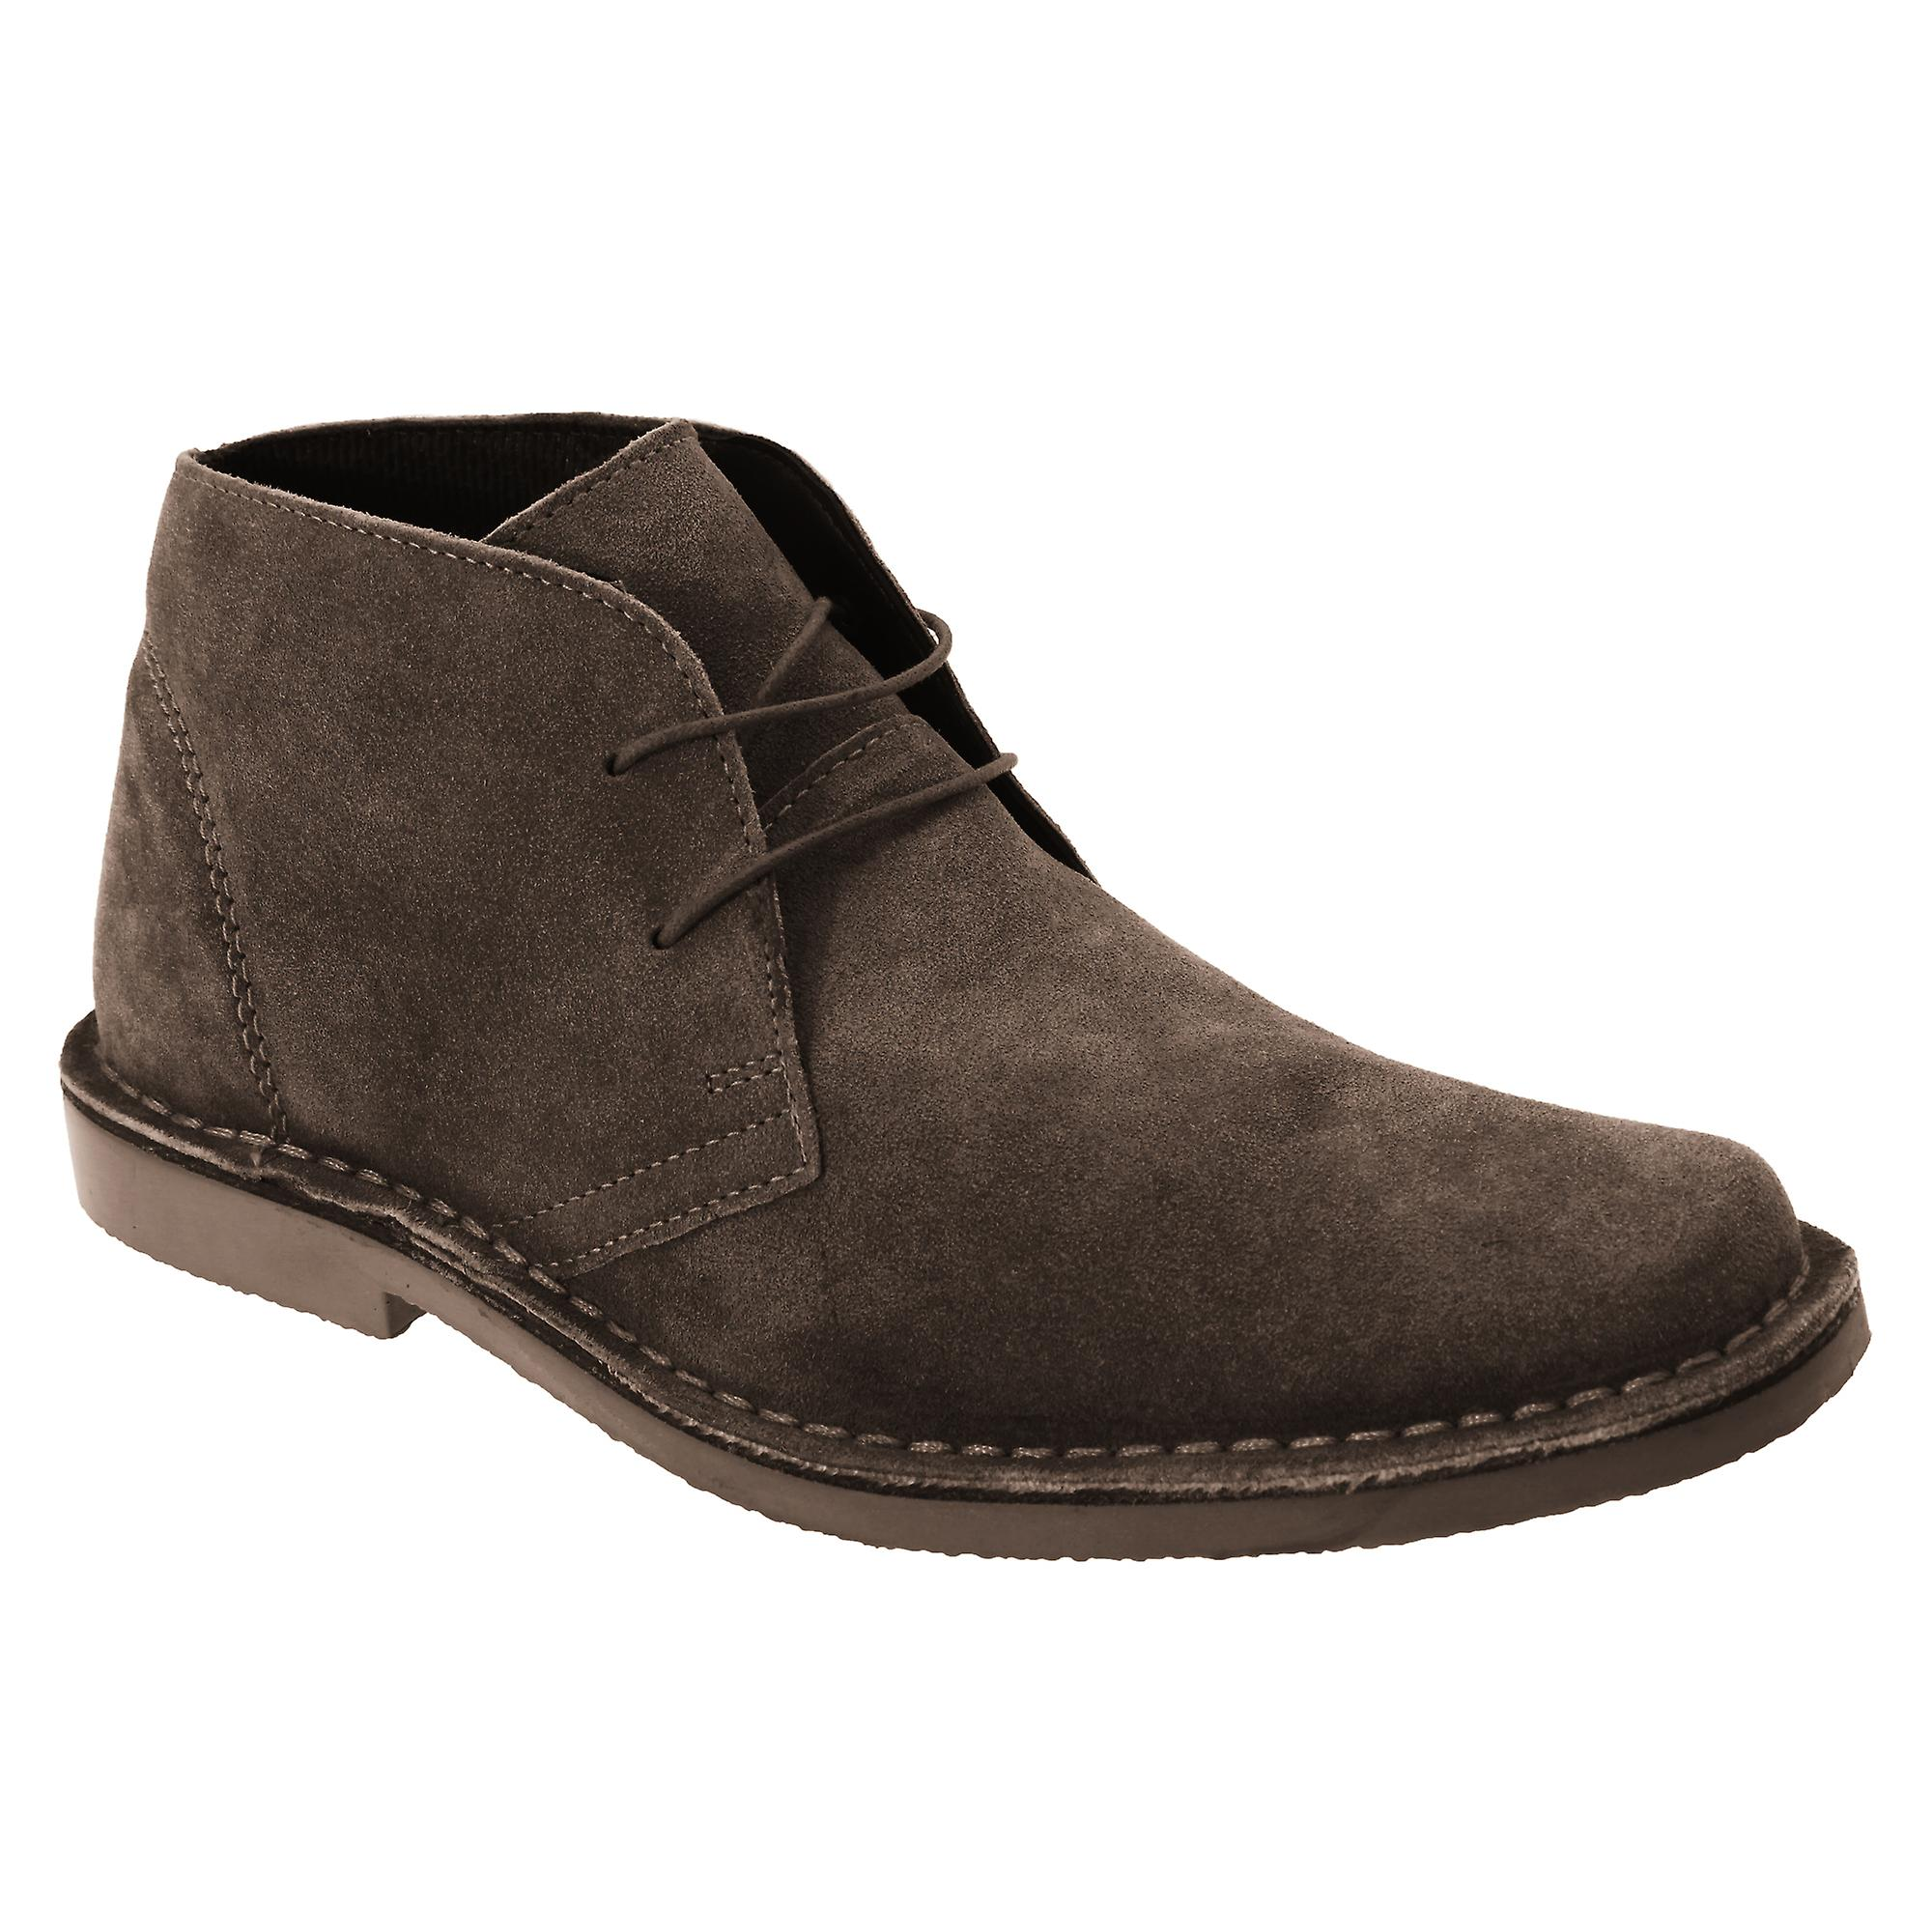 Roamers Mens Real Suede Classic Desert Boots